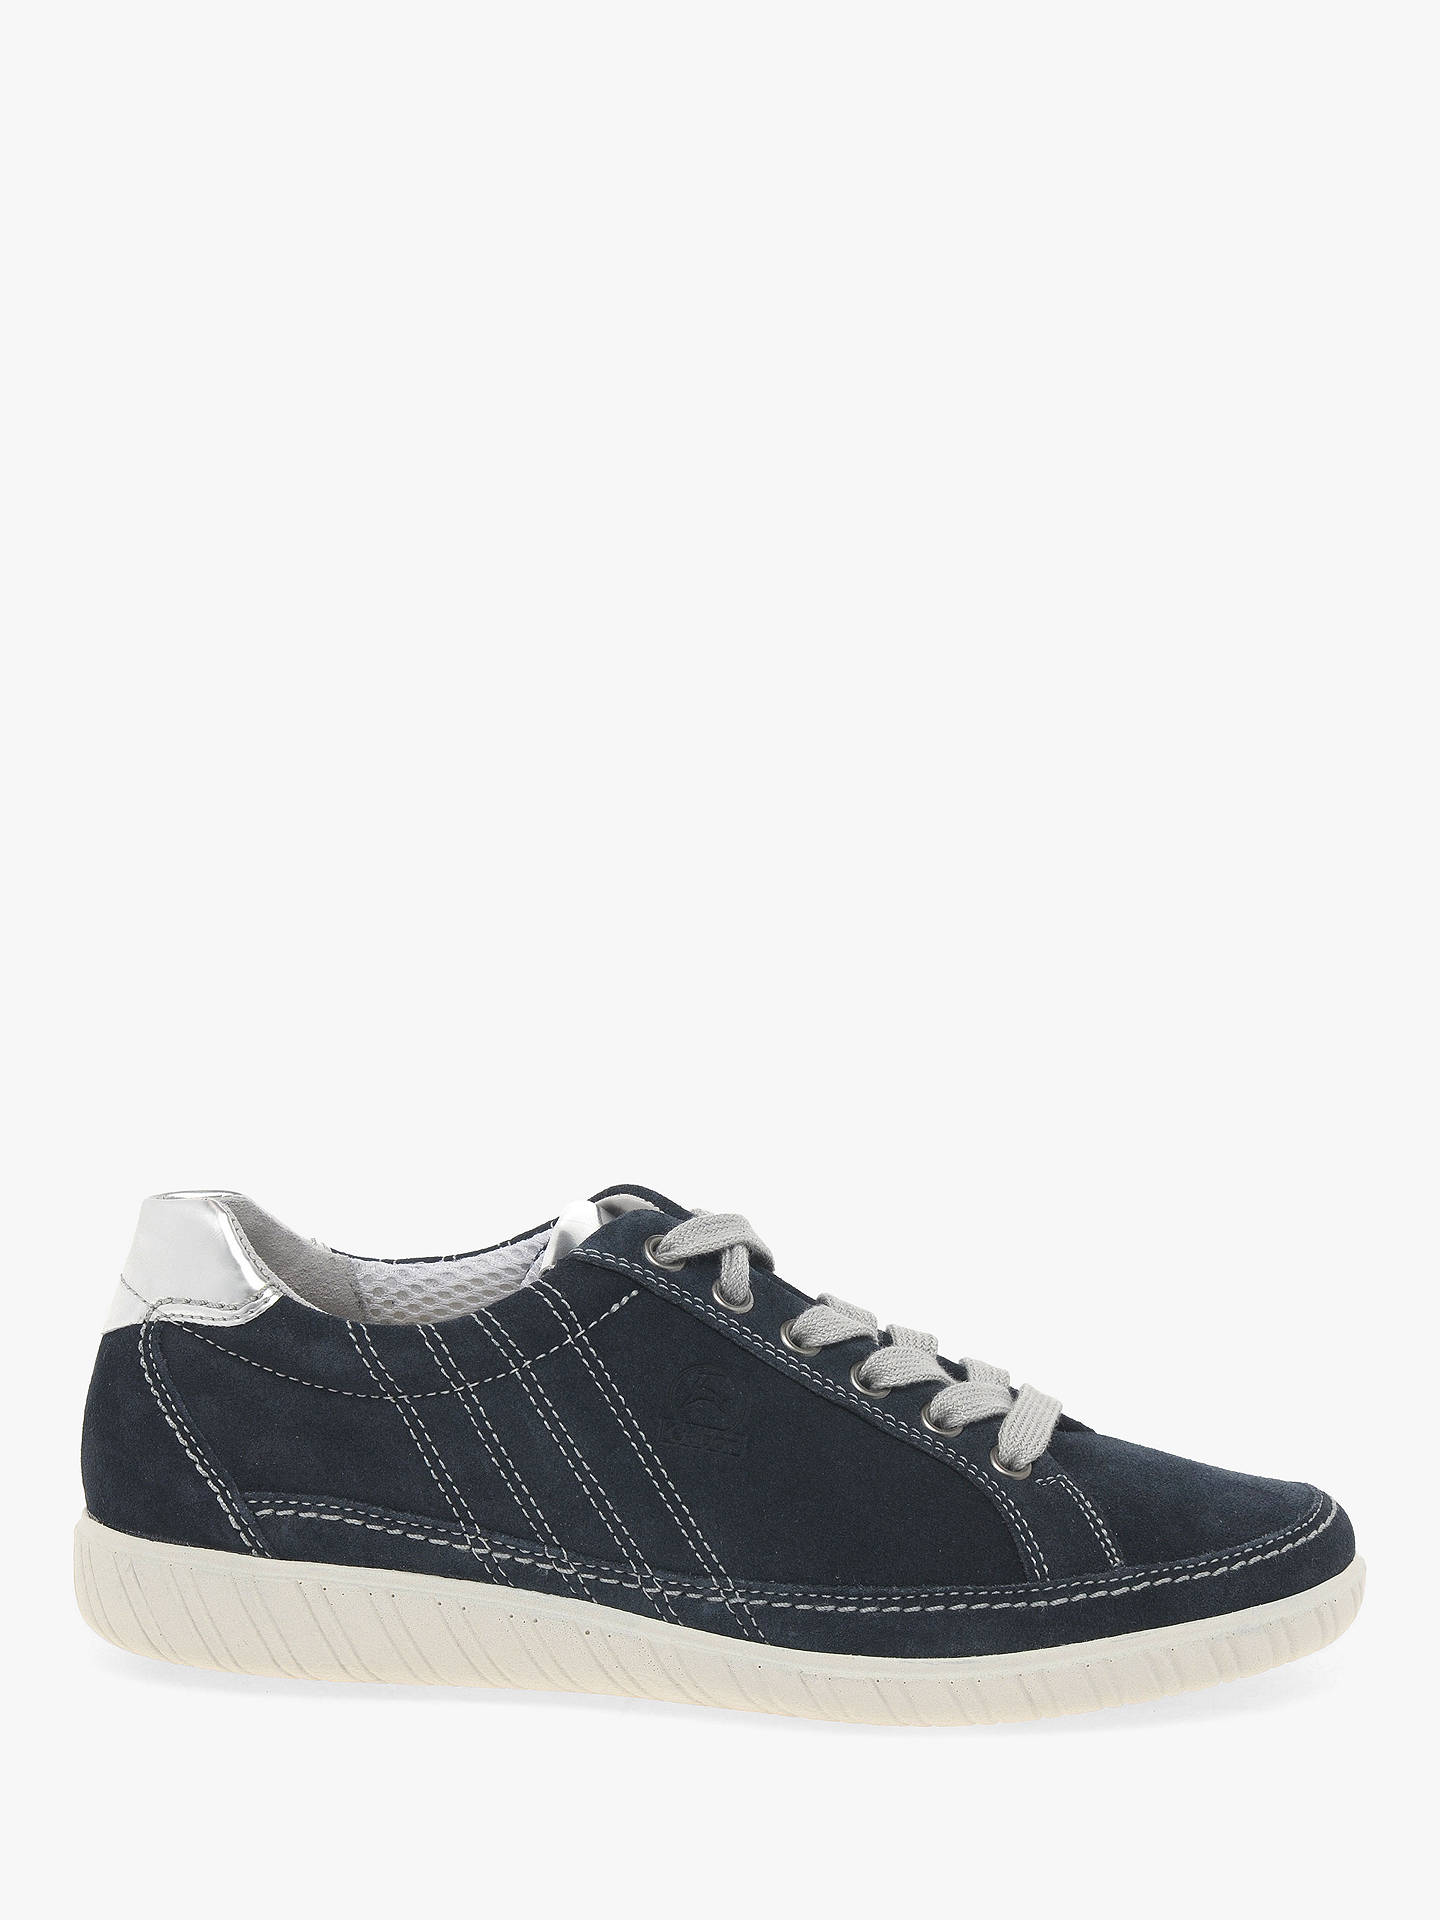 7737e2d53522b Buy Gabor Amulet Wide Fit Trainers, Navy Suede, 3 Online at johnlewis.com  ...